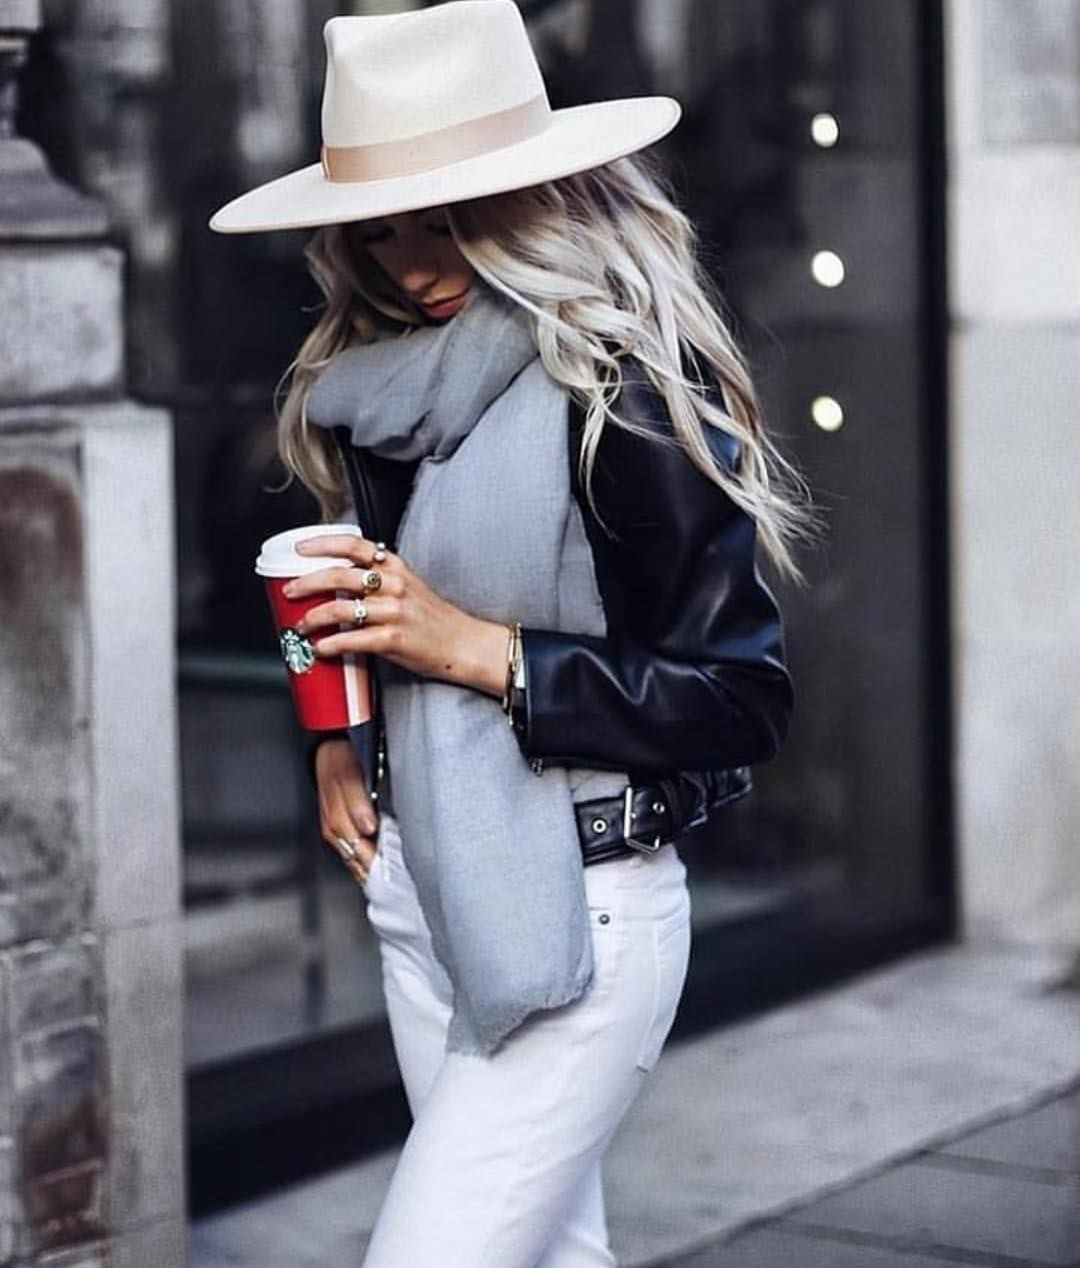 Fedora Hat, Grey Scarf With Black Leather Jacket And White Jeans: Fall Essentials 2019